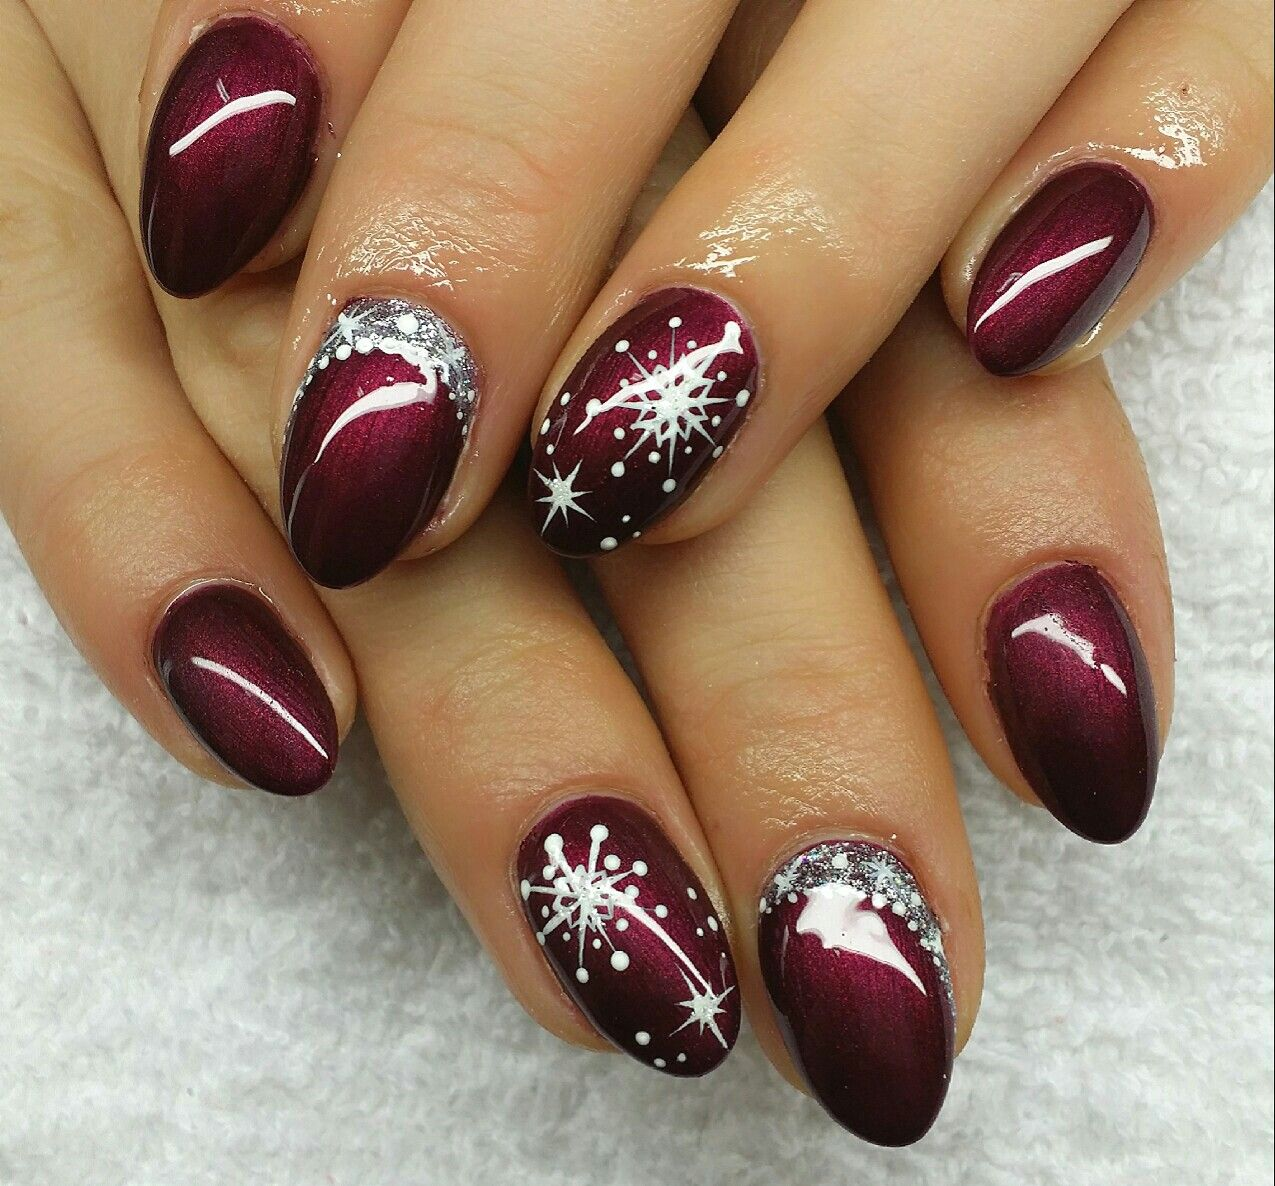 Nail Design Fullcover Winter Christmas | Siebenschön Nails ...